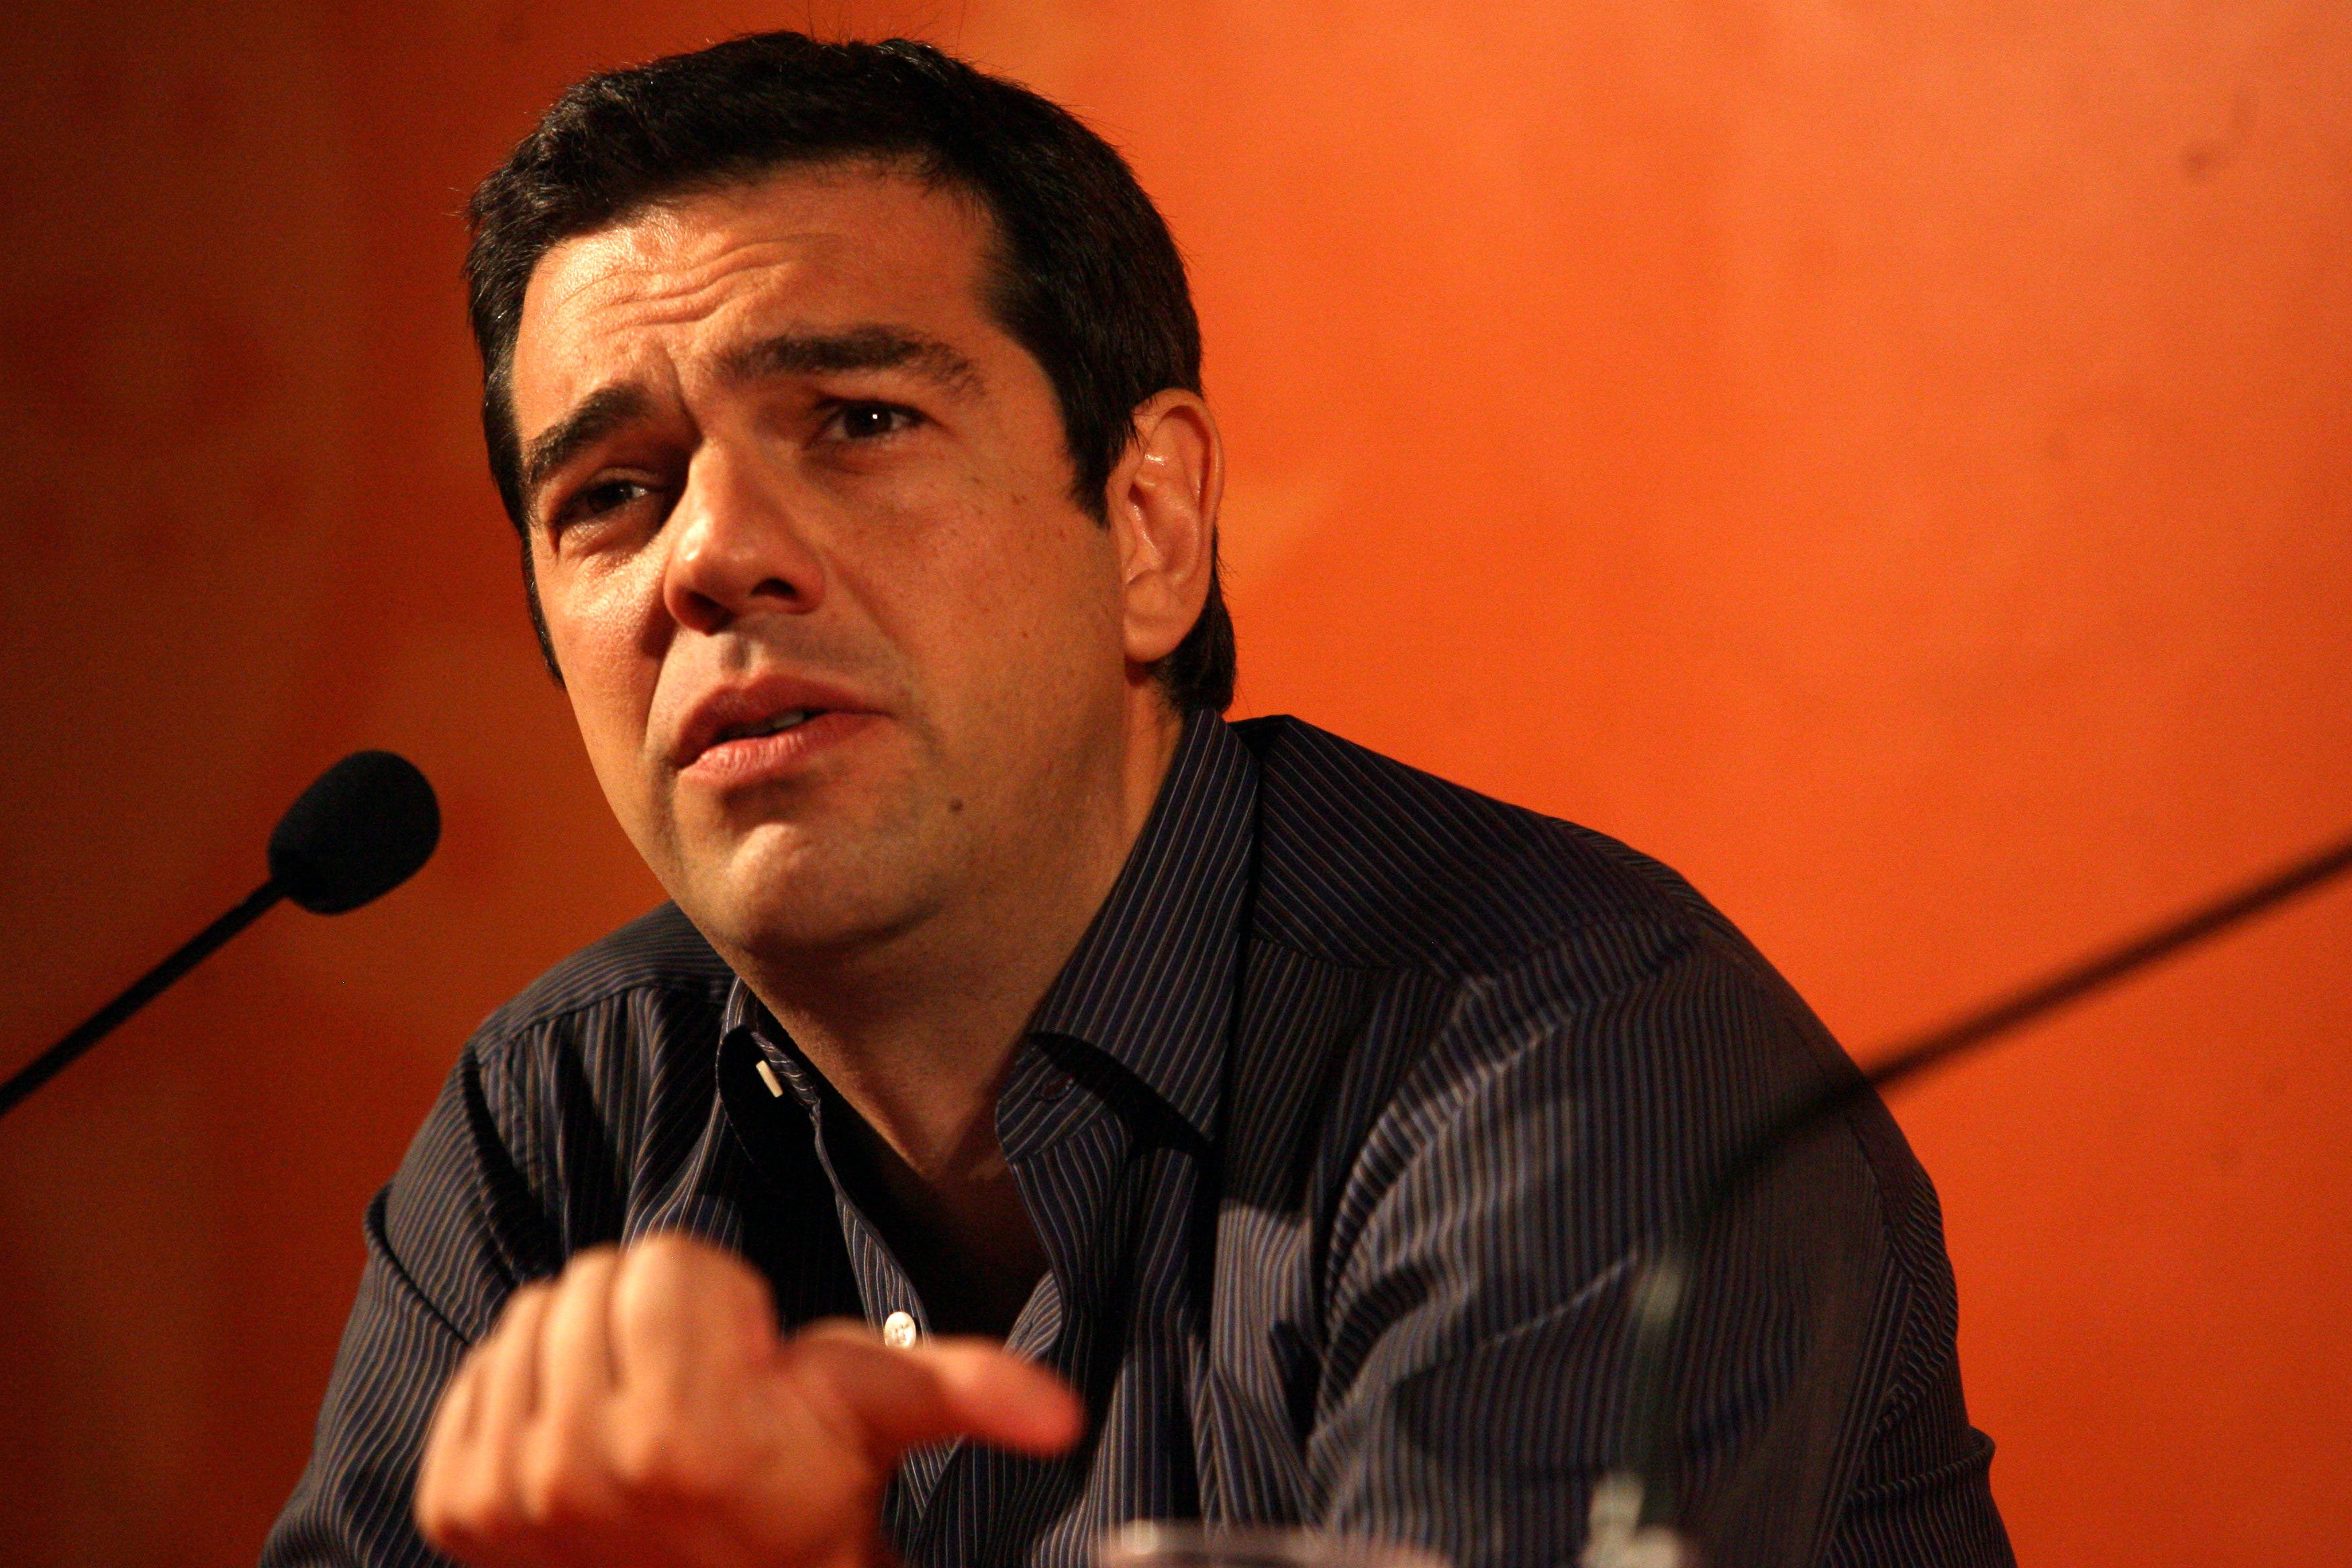 SYRIZA hoping to attract Golden Dawn voters, party leader says